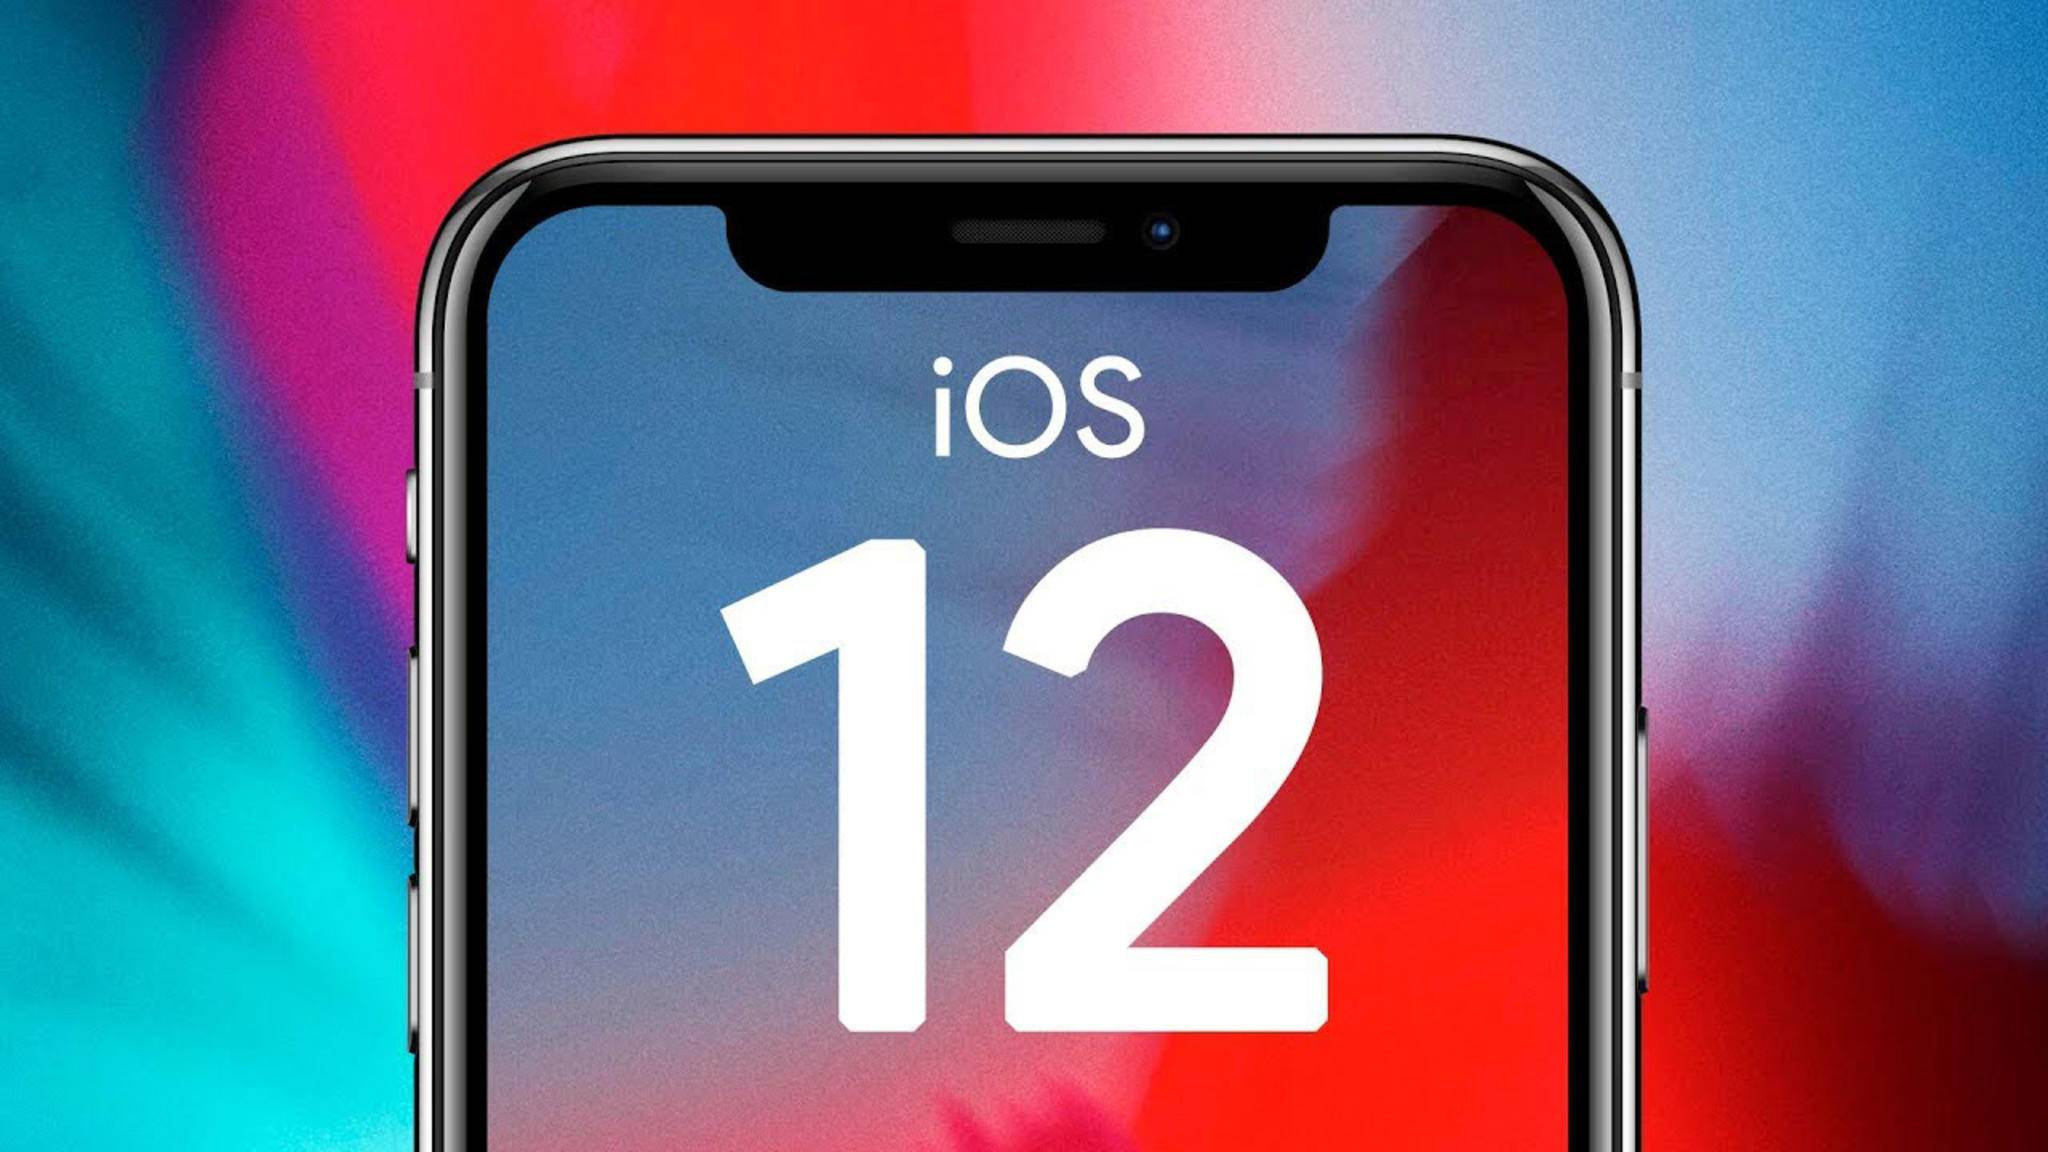 iOS 12 erschien im September 2018.